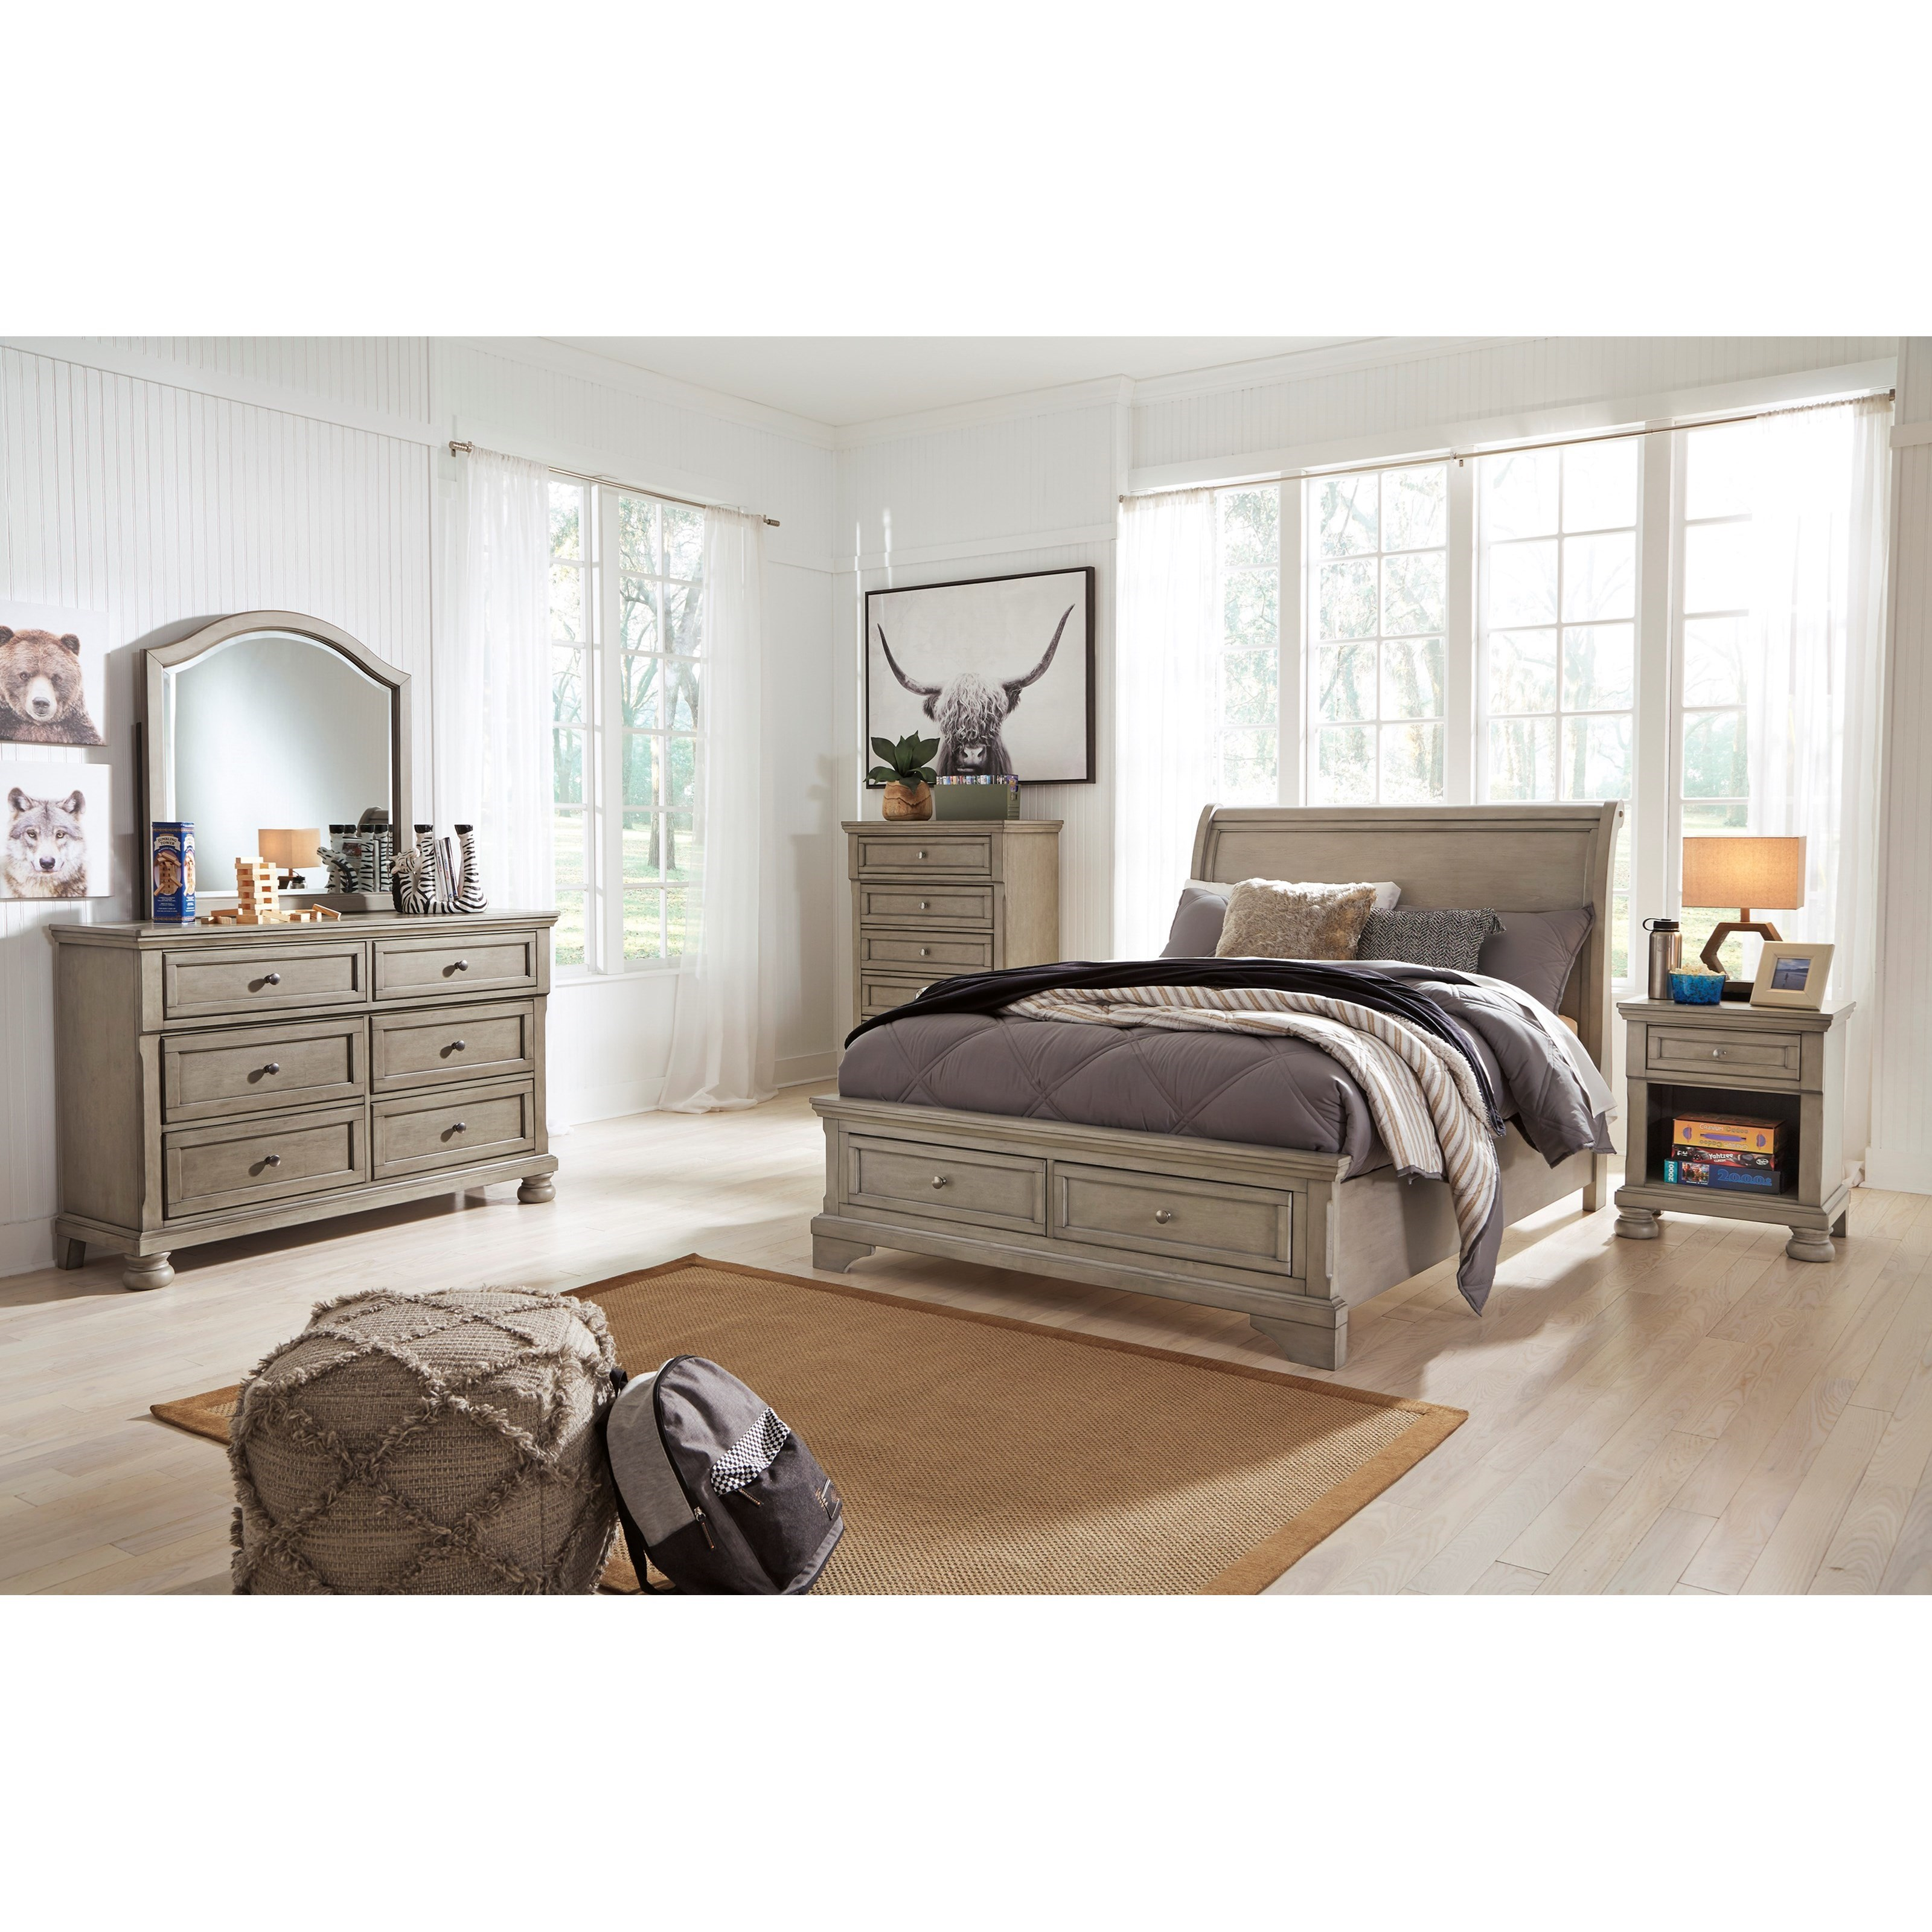 Lettner Full Bedroom Group by Signature Design by Ashley at Northeast Factory Direct